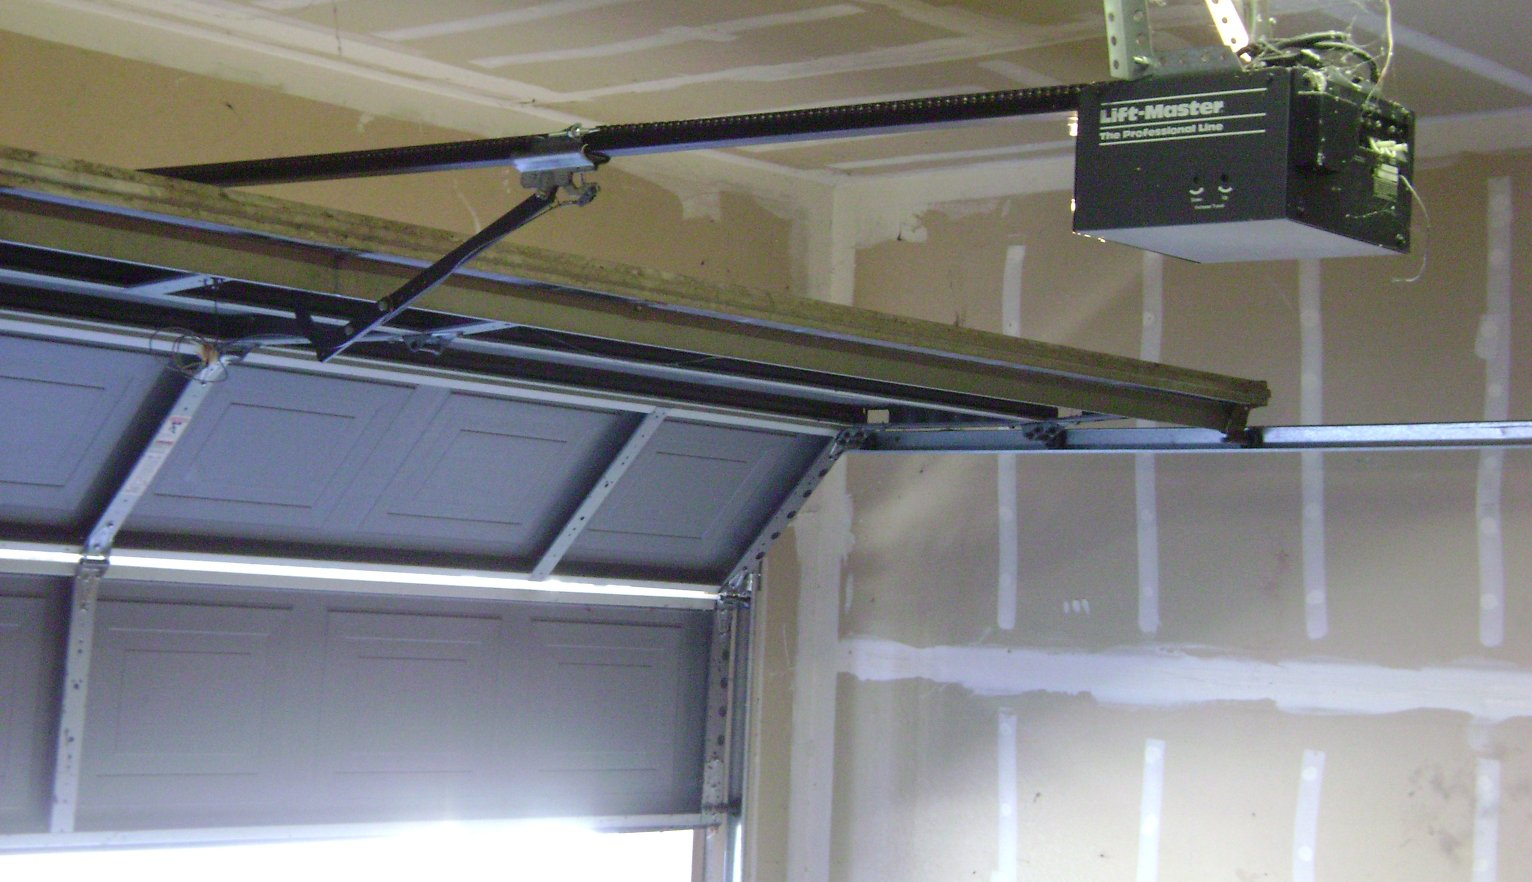 882 #4F5A7C Tips In Preparing Space For A New Garage Door Adams Door Systems picture/photo Install Garage Doors 37091532